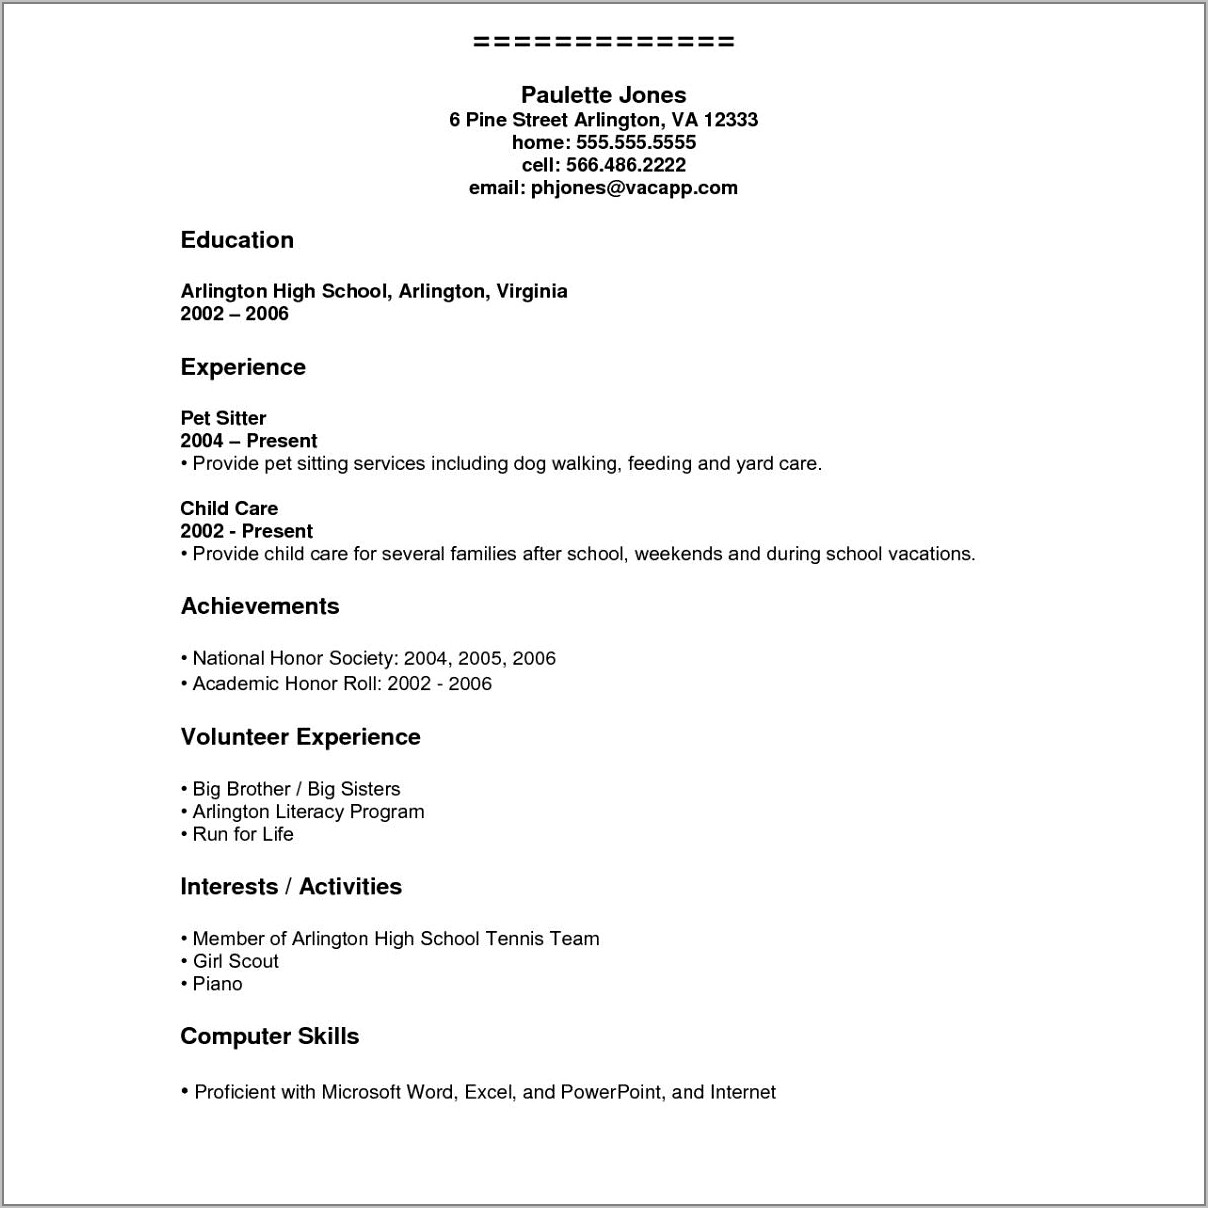 Curriculum Vitae Examples For Highschool Students